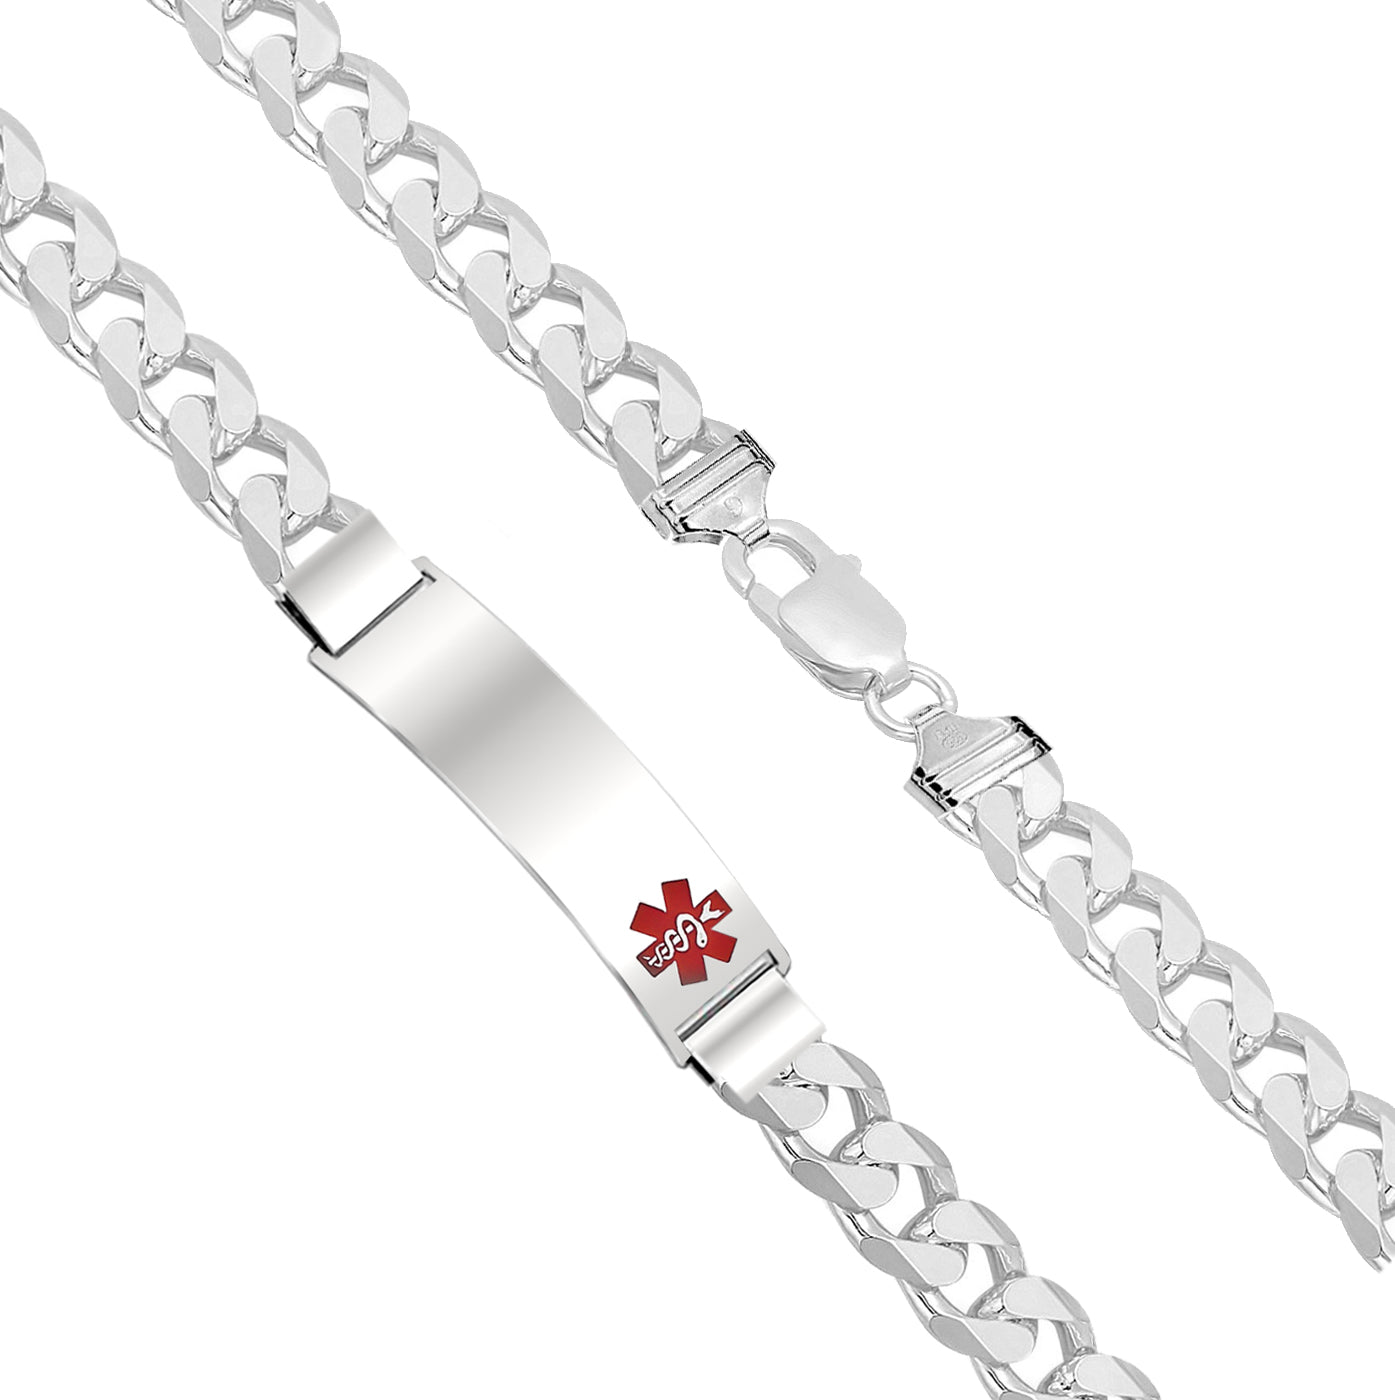 Charm Bracelet - Medical Alert Bracelet In Curb Style